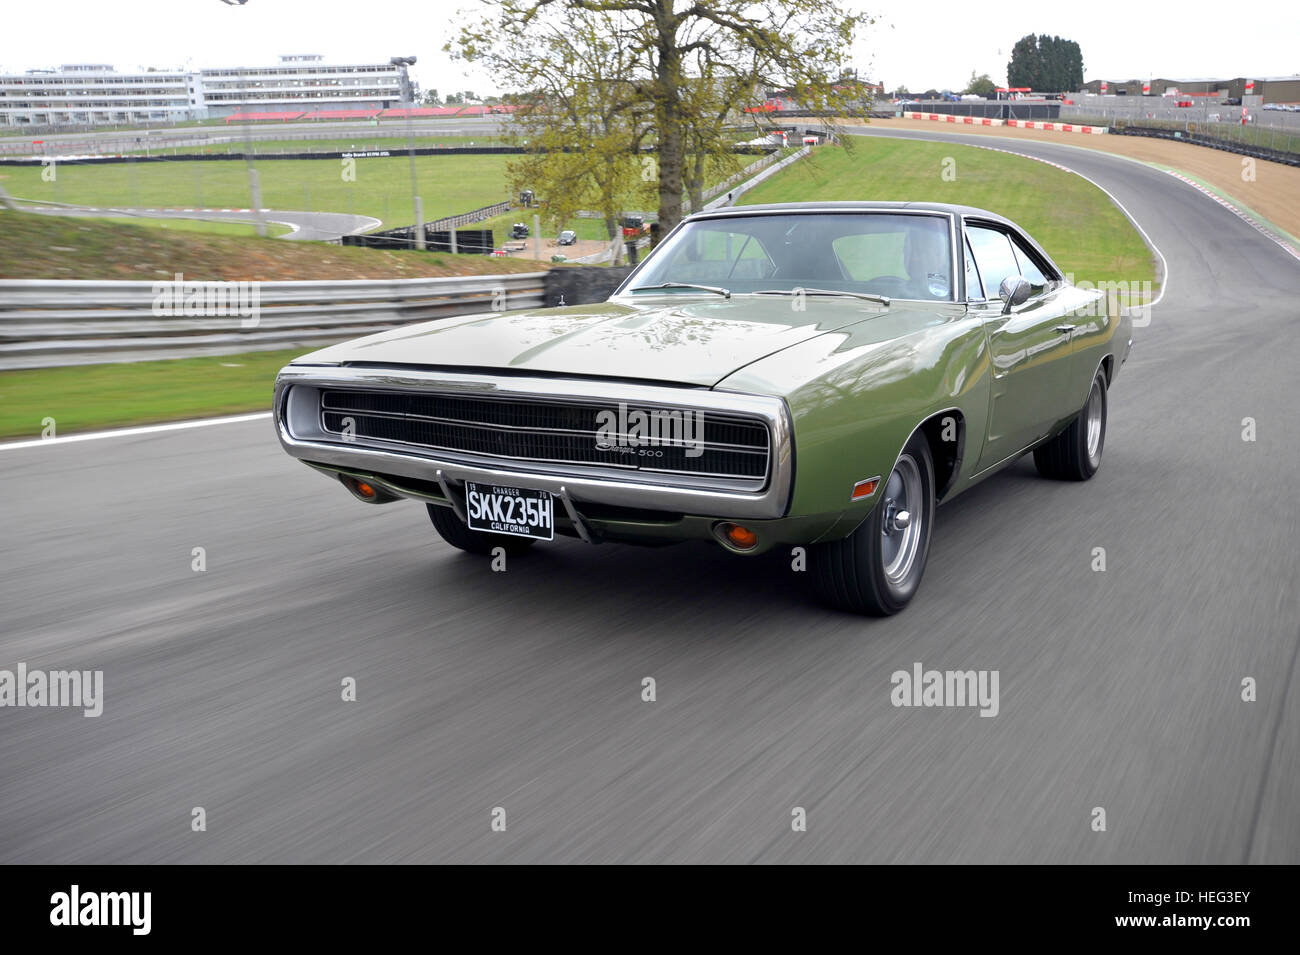 1970 dodge charger 500 classic american muscle car stock image